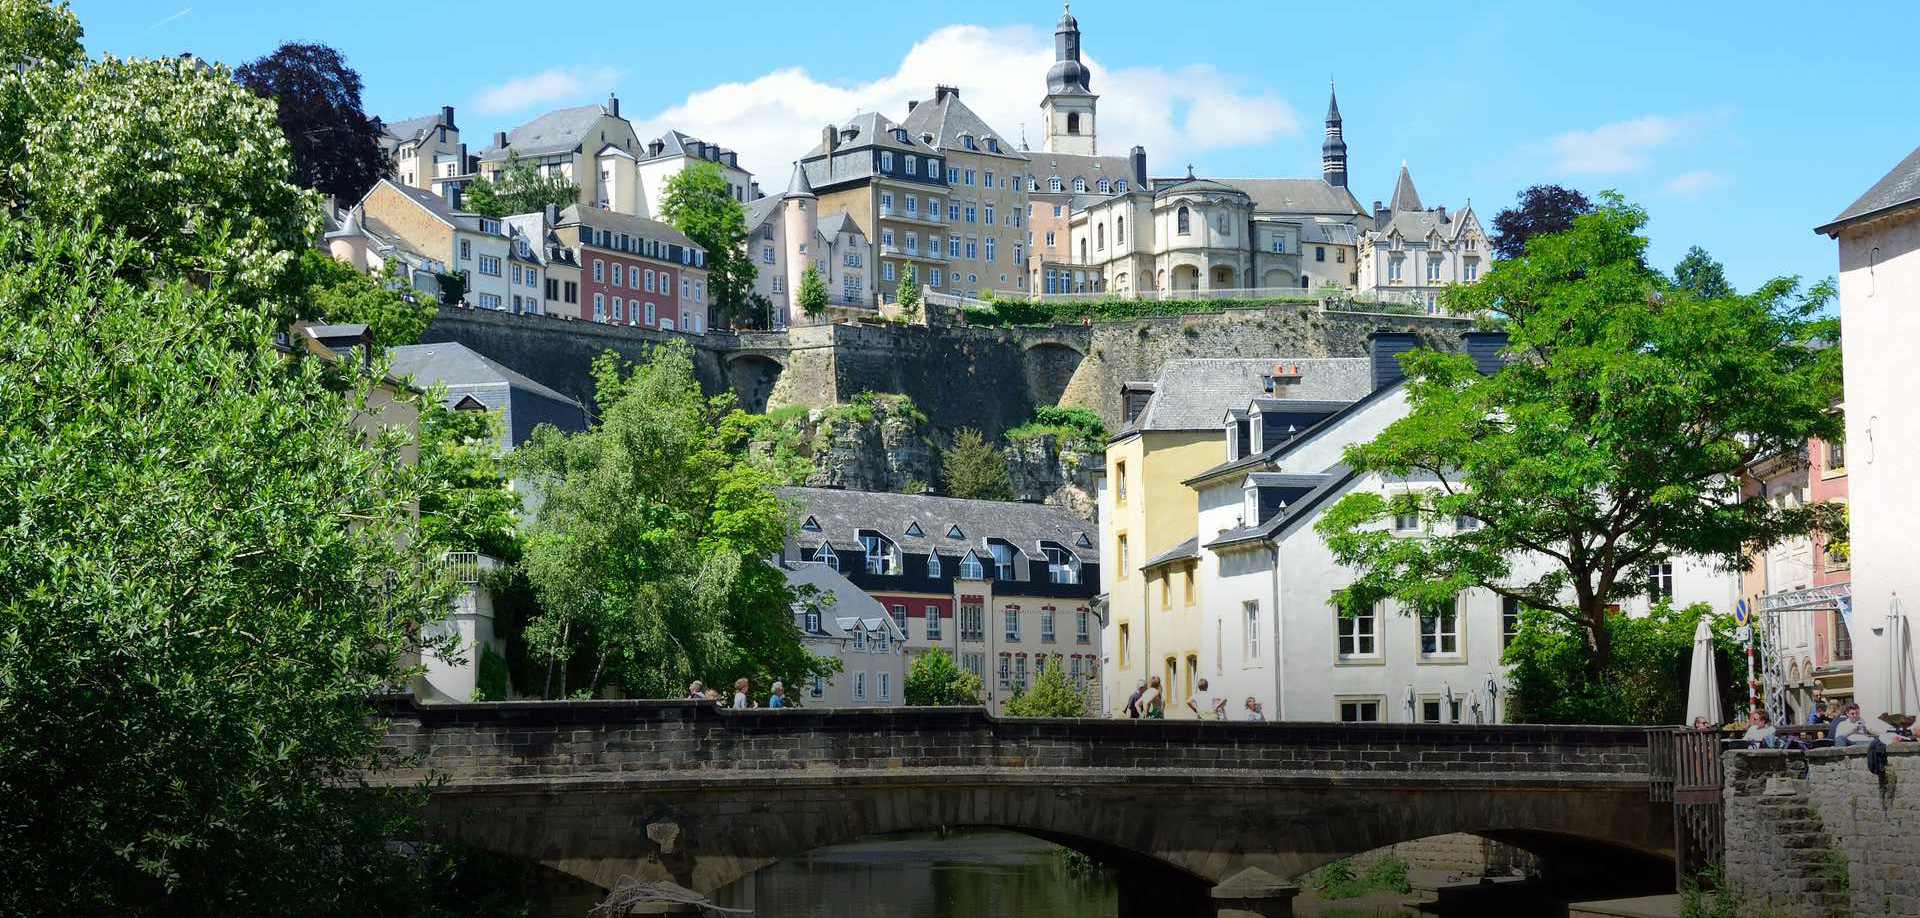 SIG Fiduciaire, Company formation in Switzerland and Luxembourg